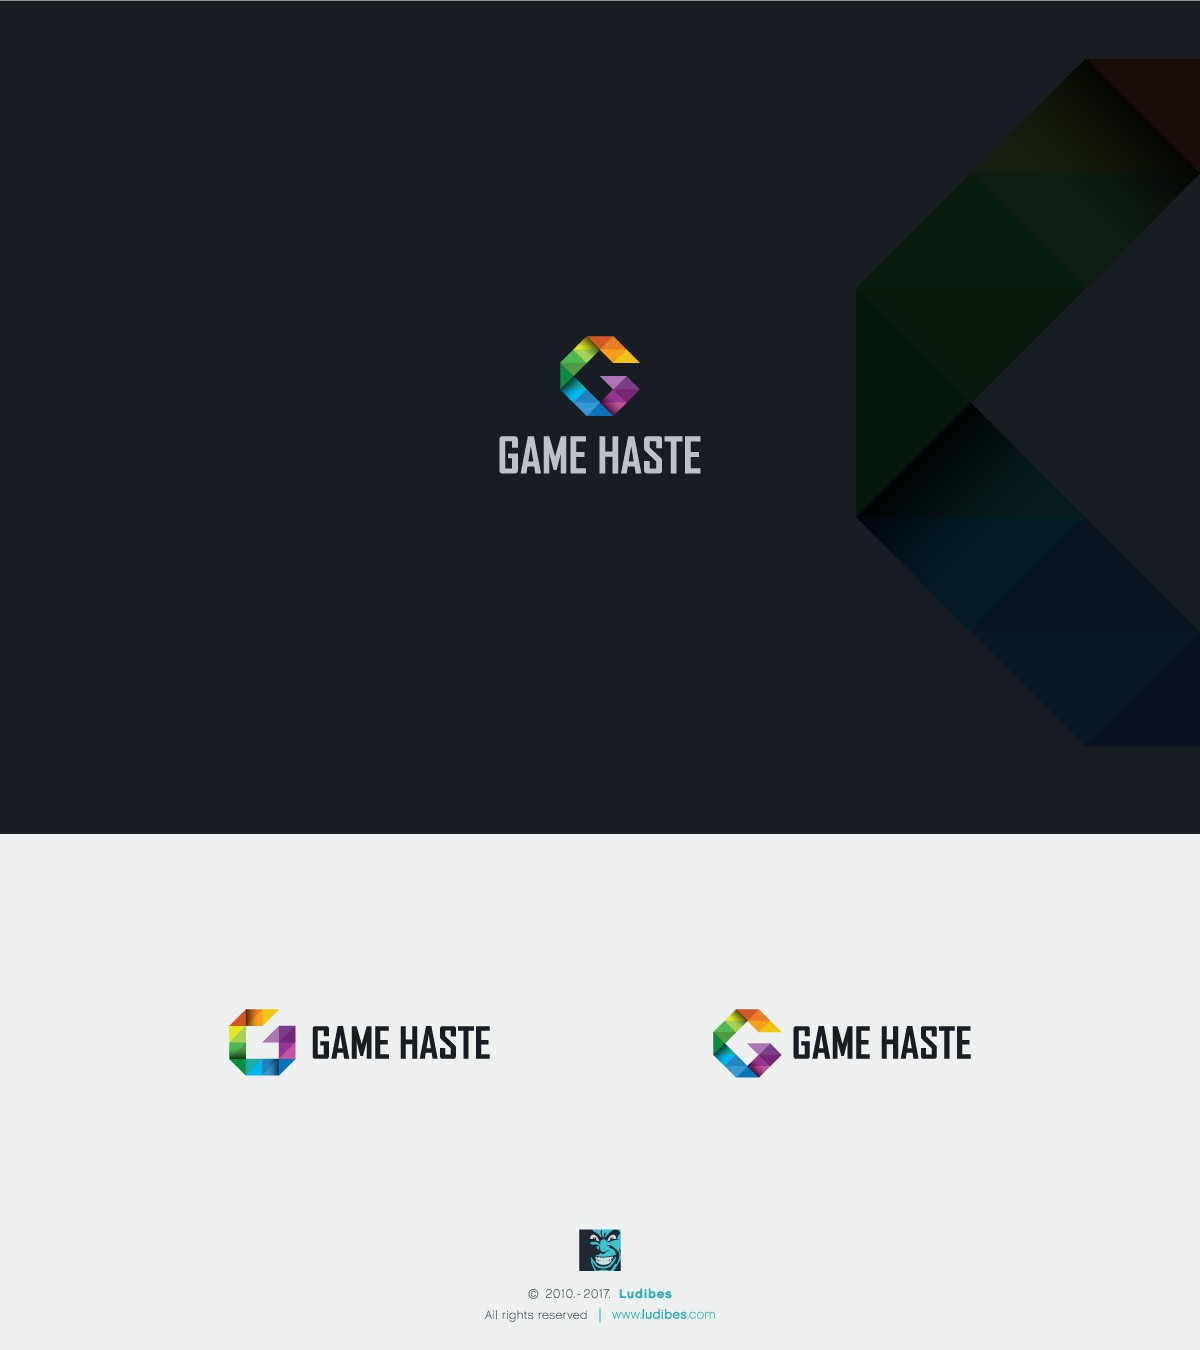 Game Haste